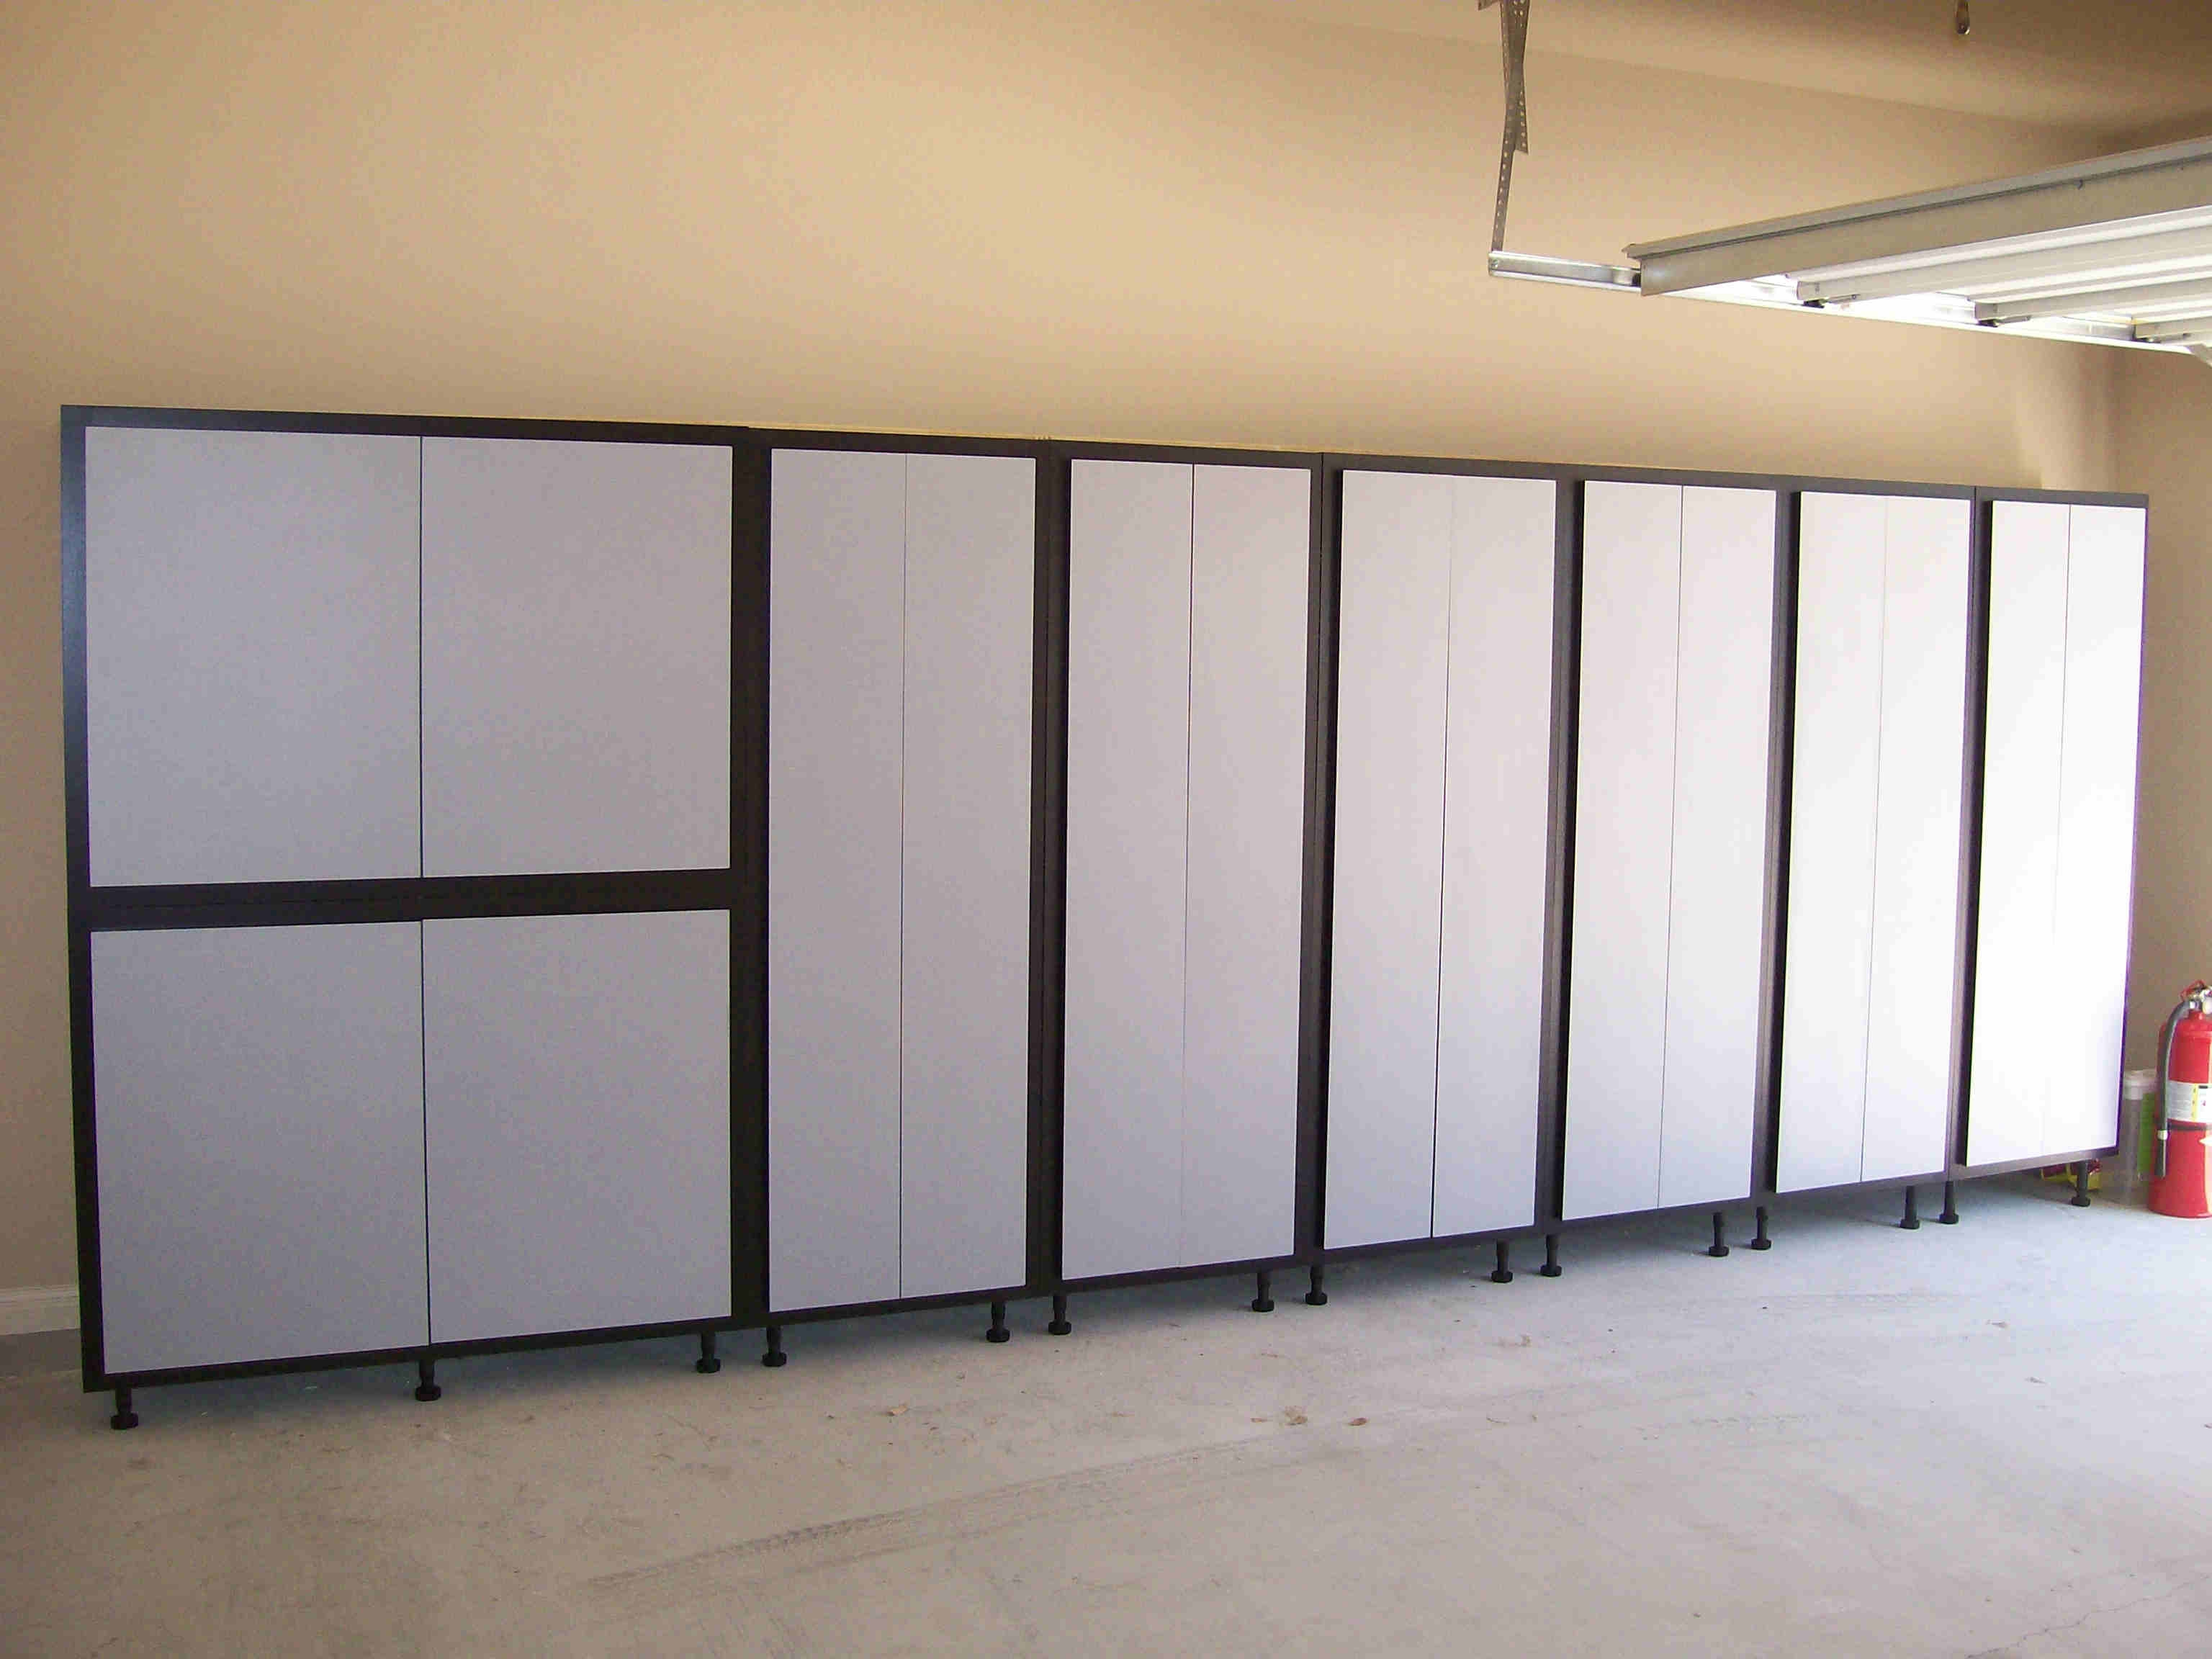 cabinet outstanding storage and ideas cabinets garage metal photo wall ebay cabinetsgarage concept